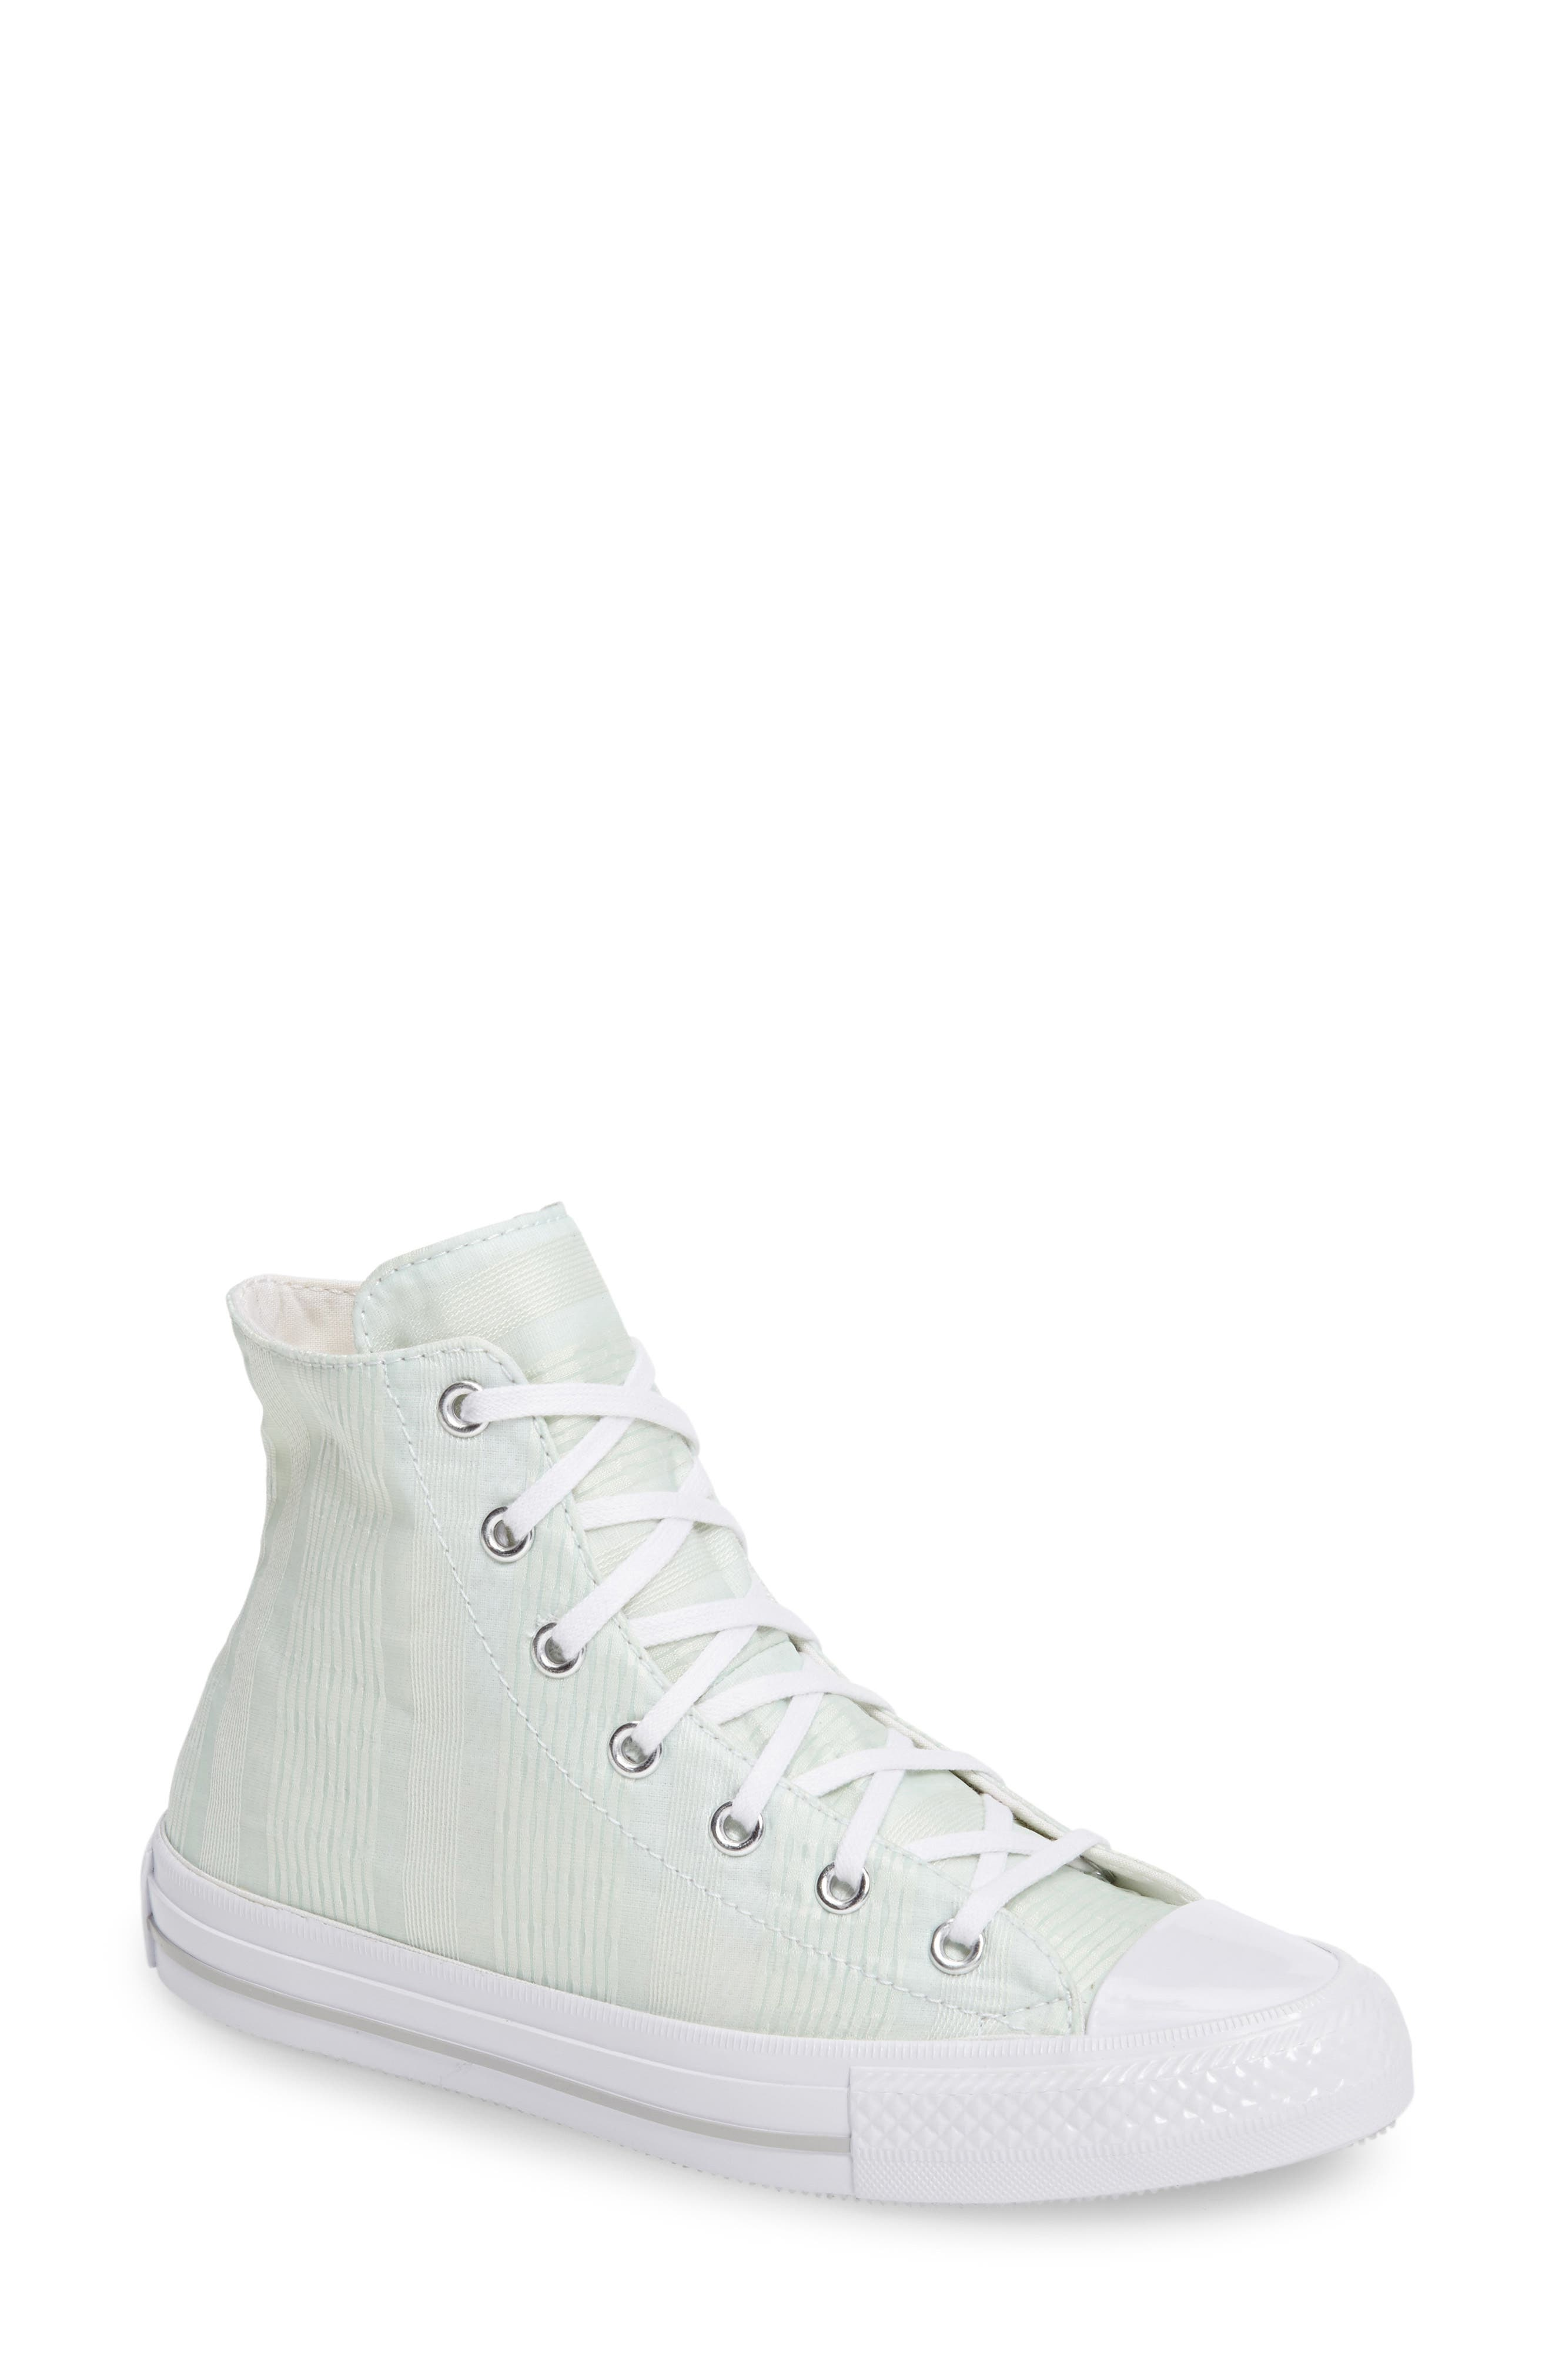 Main Image - Converse Chuck Taylor® All Star® Gemma High Top Sneaker (Women)